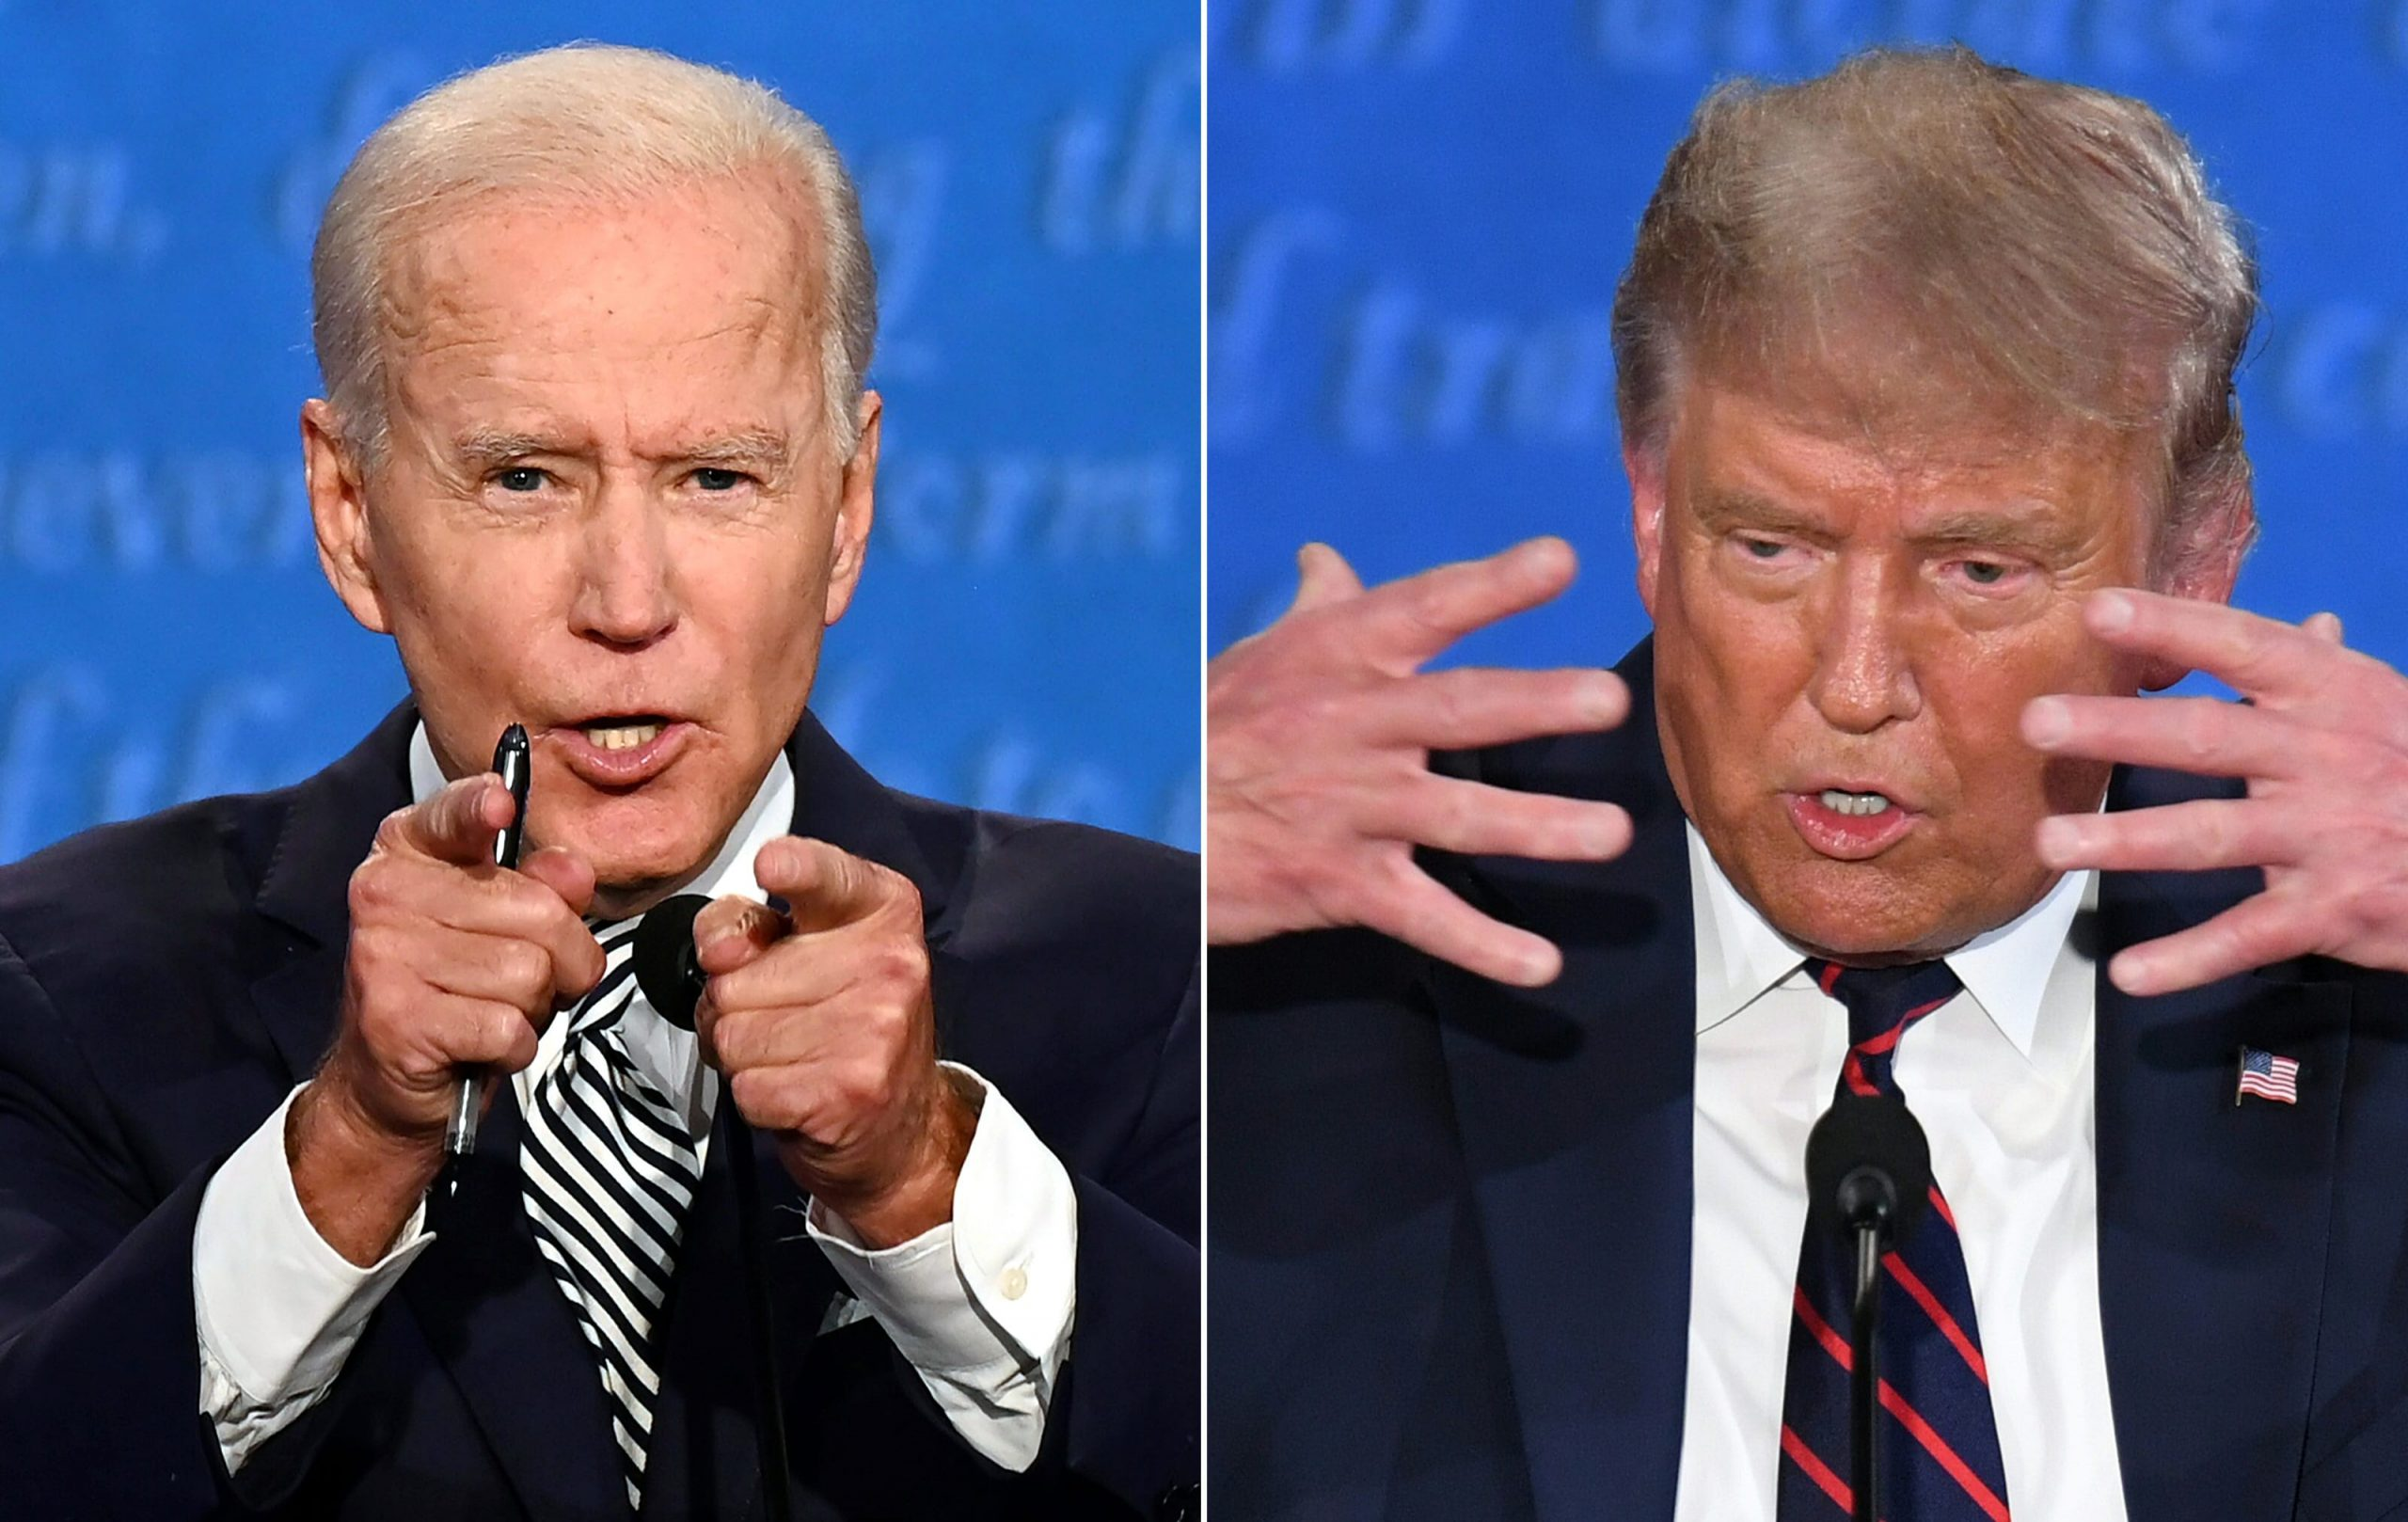 Vicious first debate between Trump and Biden offered little on policy, lots of conflict